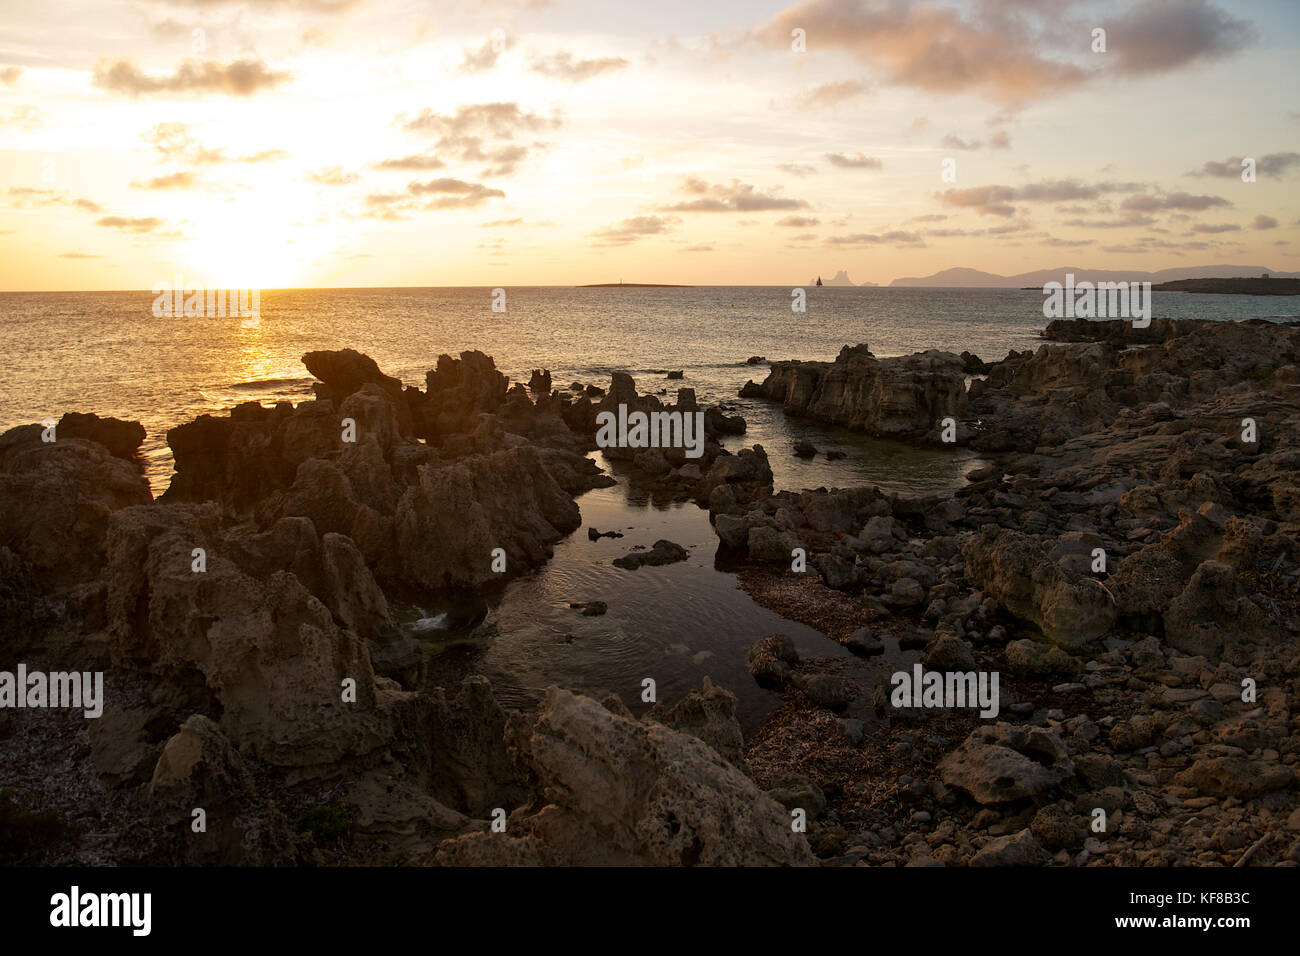 Sunset with seashore rocks near Ses Illetes beach with Es Vedrá and Ibiza islands in the background from Formentera - Stock Image